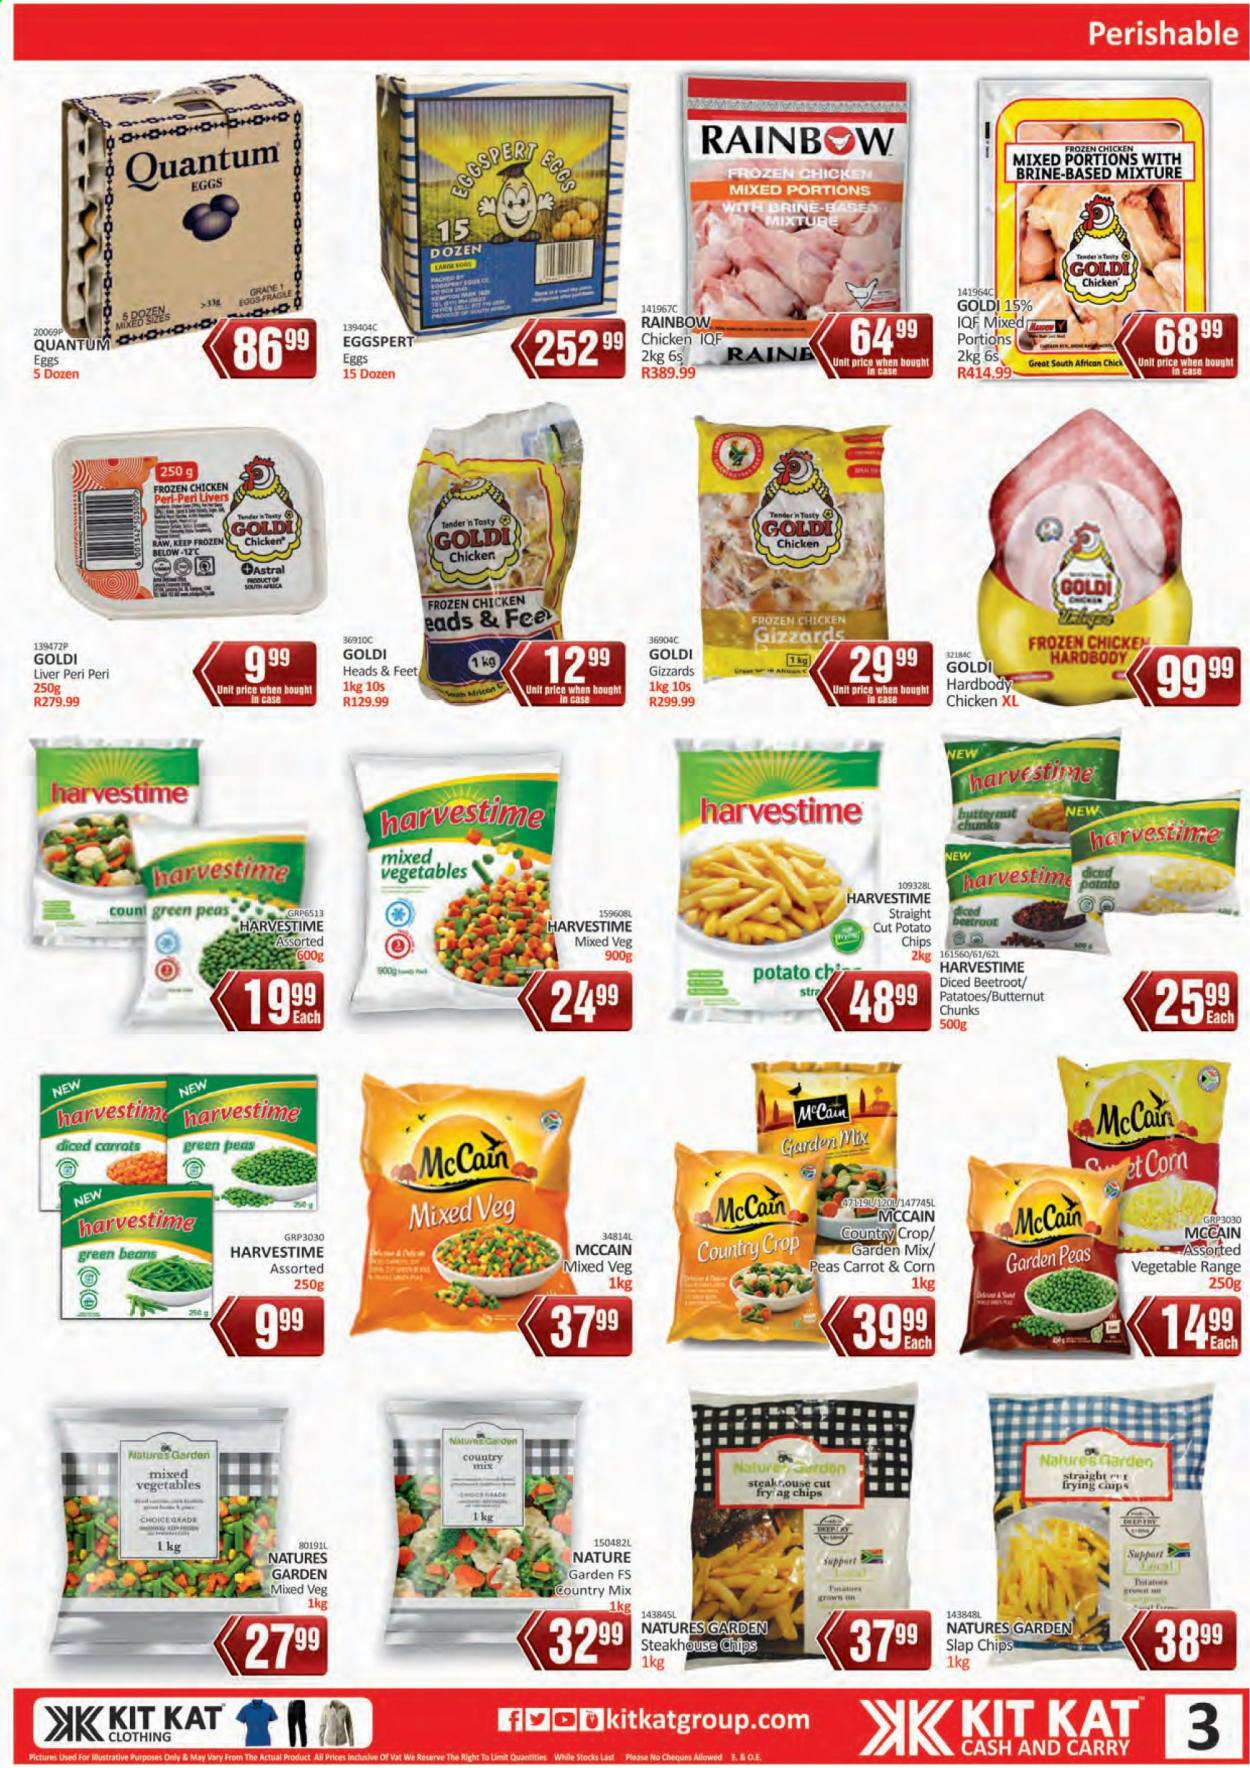 Kit Kat Cash & Carry catalogue  - 02.11.2021 - 05.12.2021. Page 3.